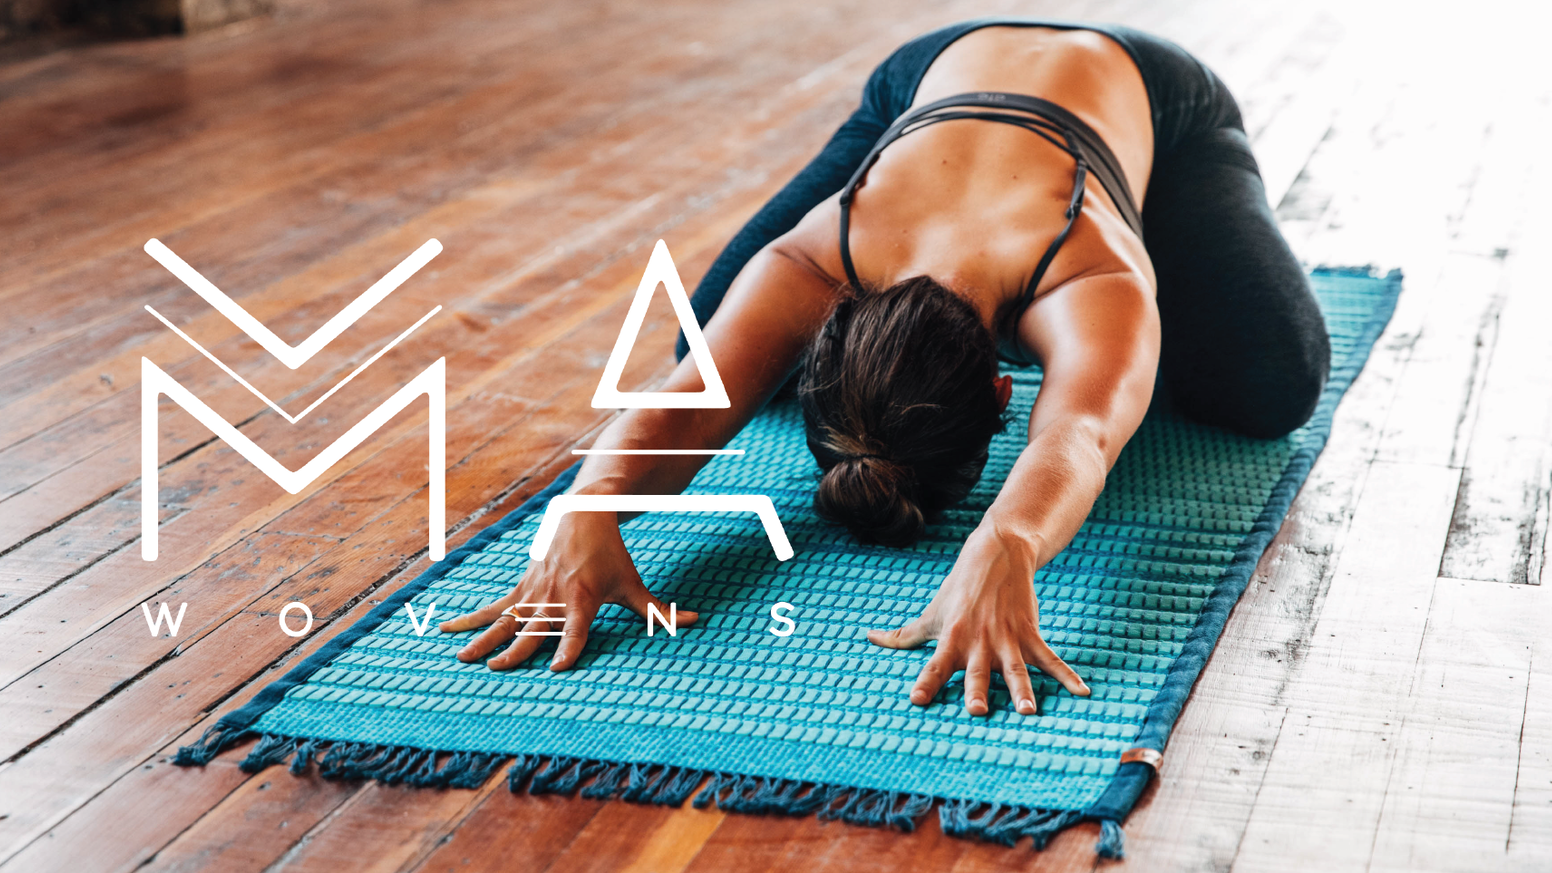 This versatile, beautiful handwoven yoga mat is made with the environmentally conscious materials organic hemp, and non-toxic rubber.